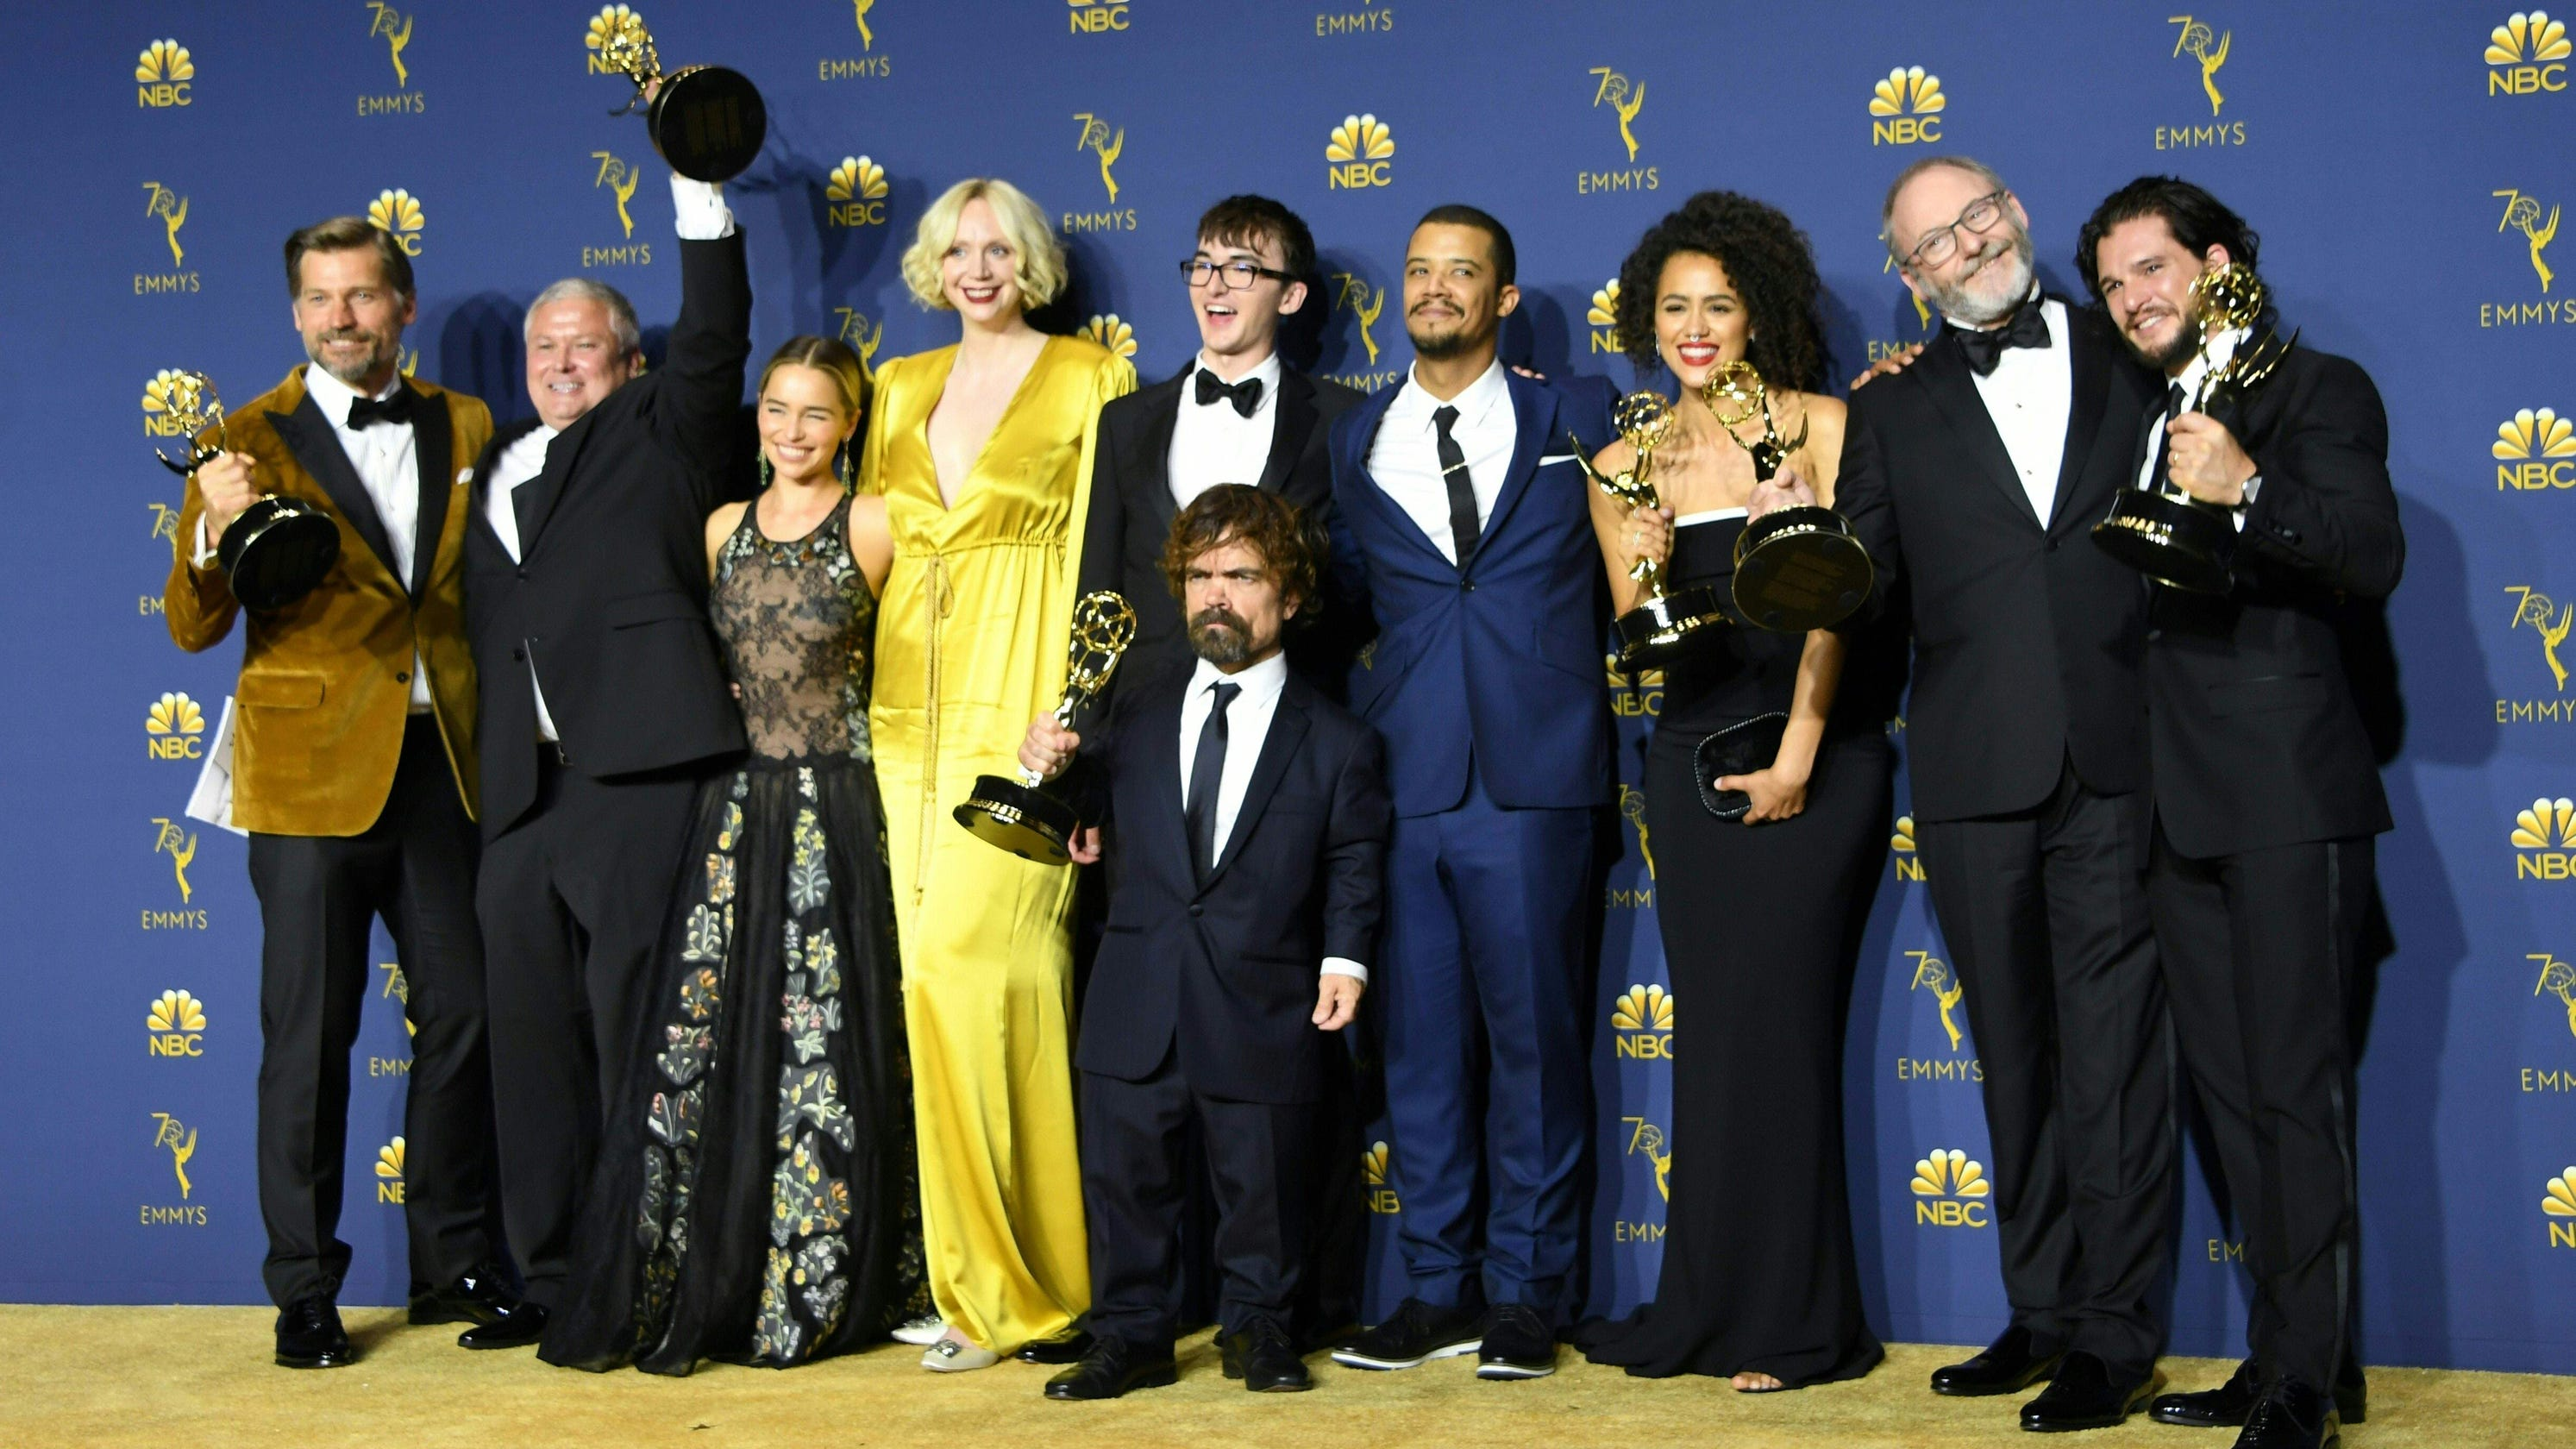 f1b6d9546 Emmys 2018: The sights, scenes and best quotes from backstage (and why  Trump was ignored)